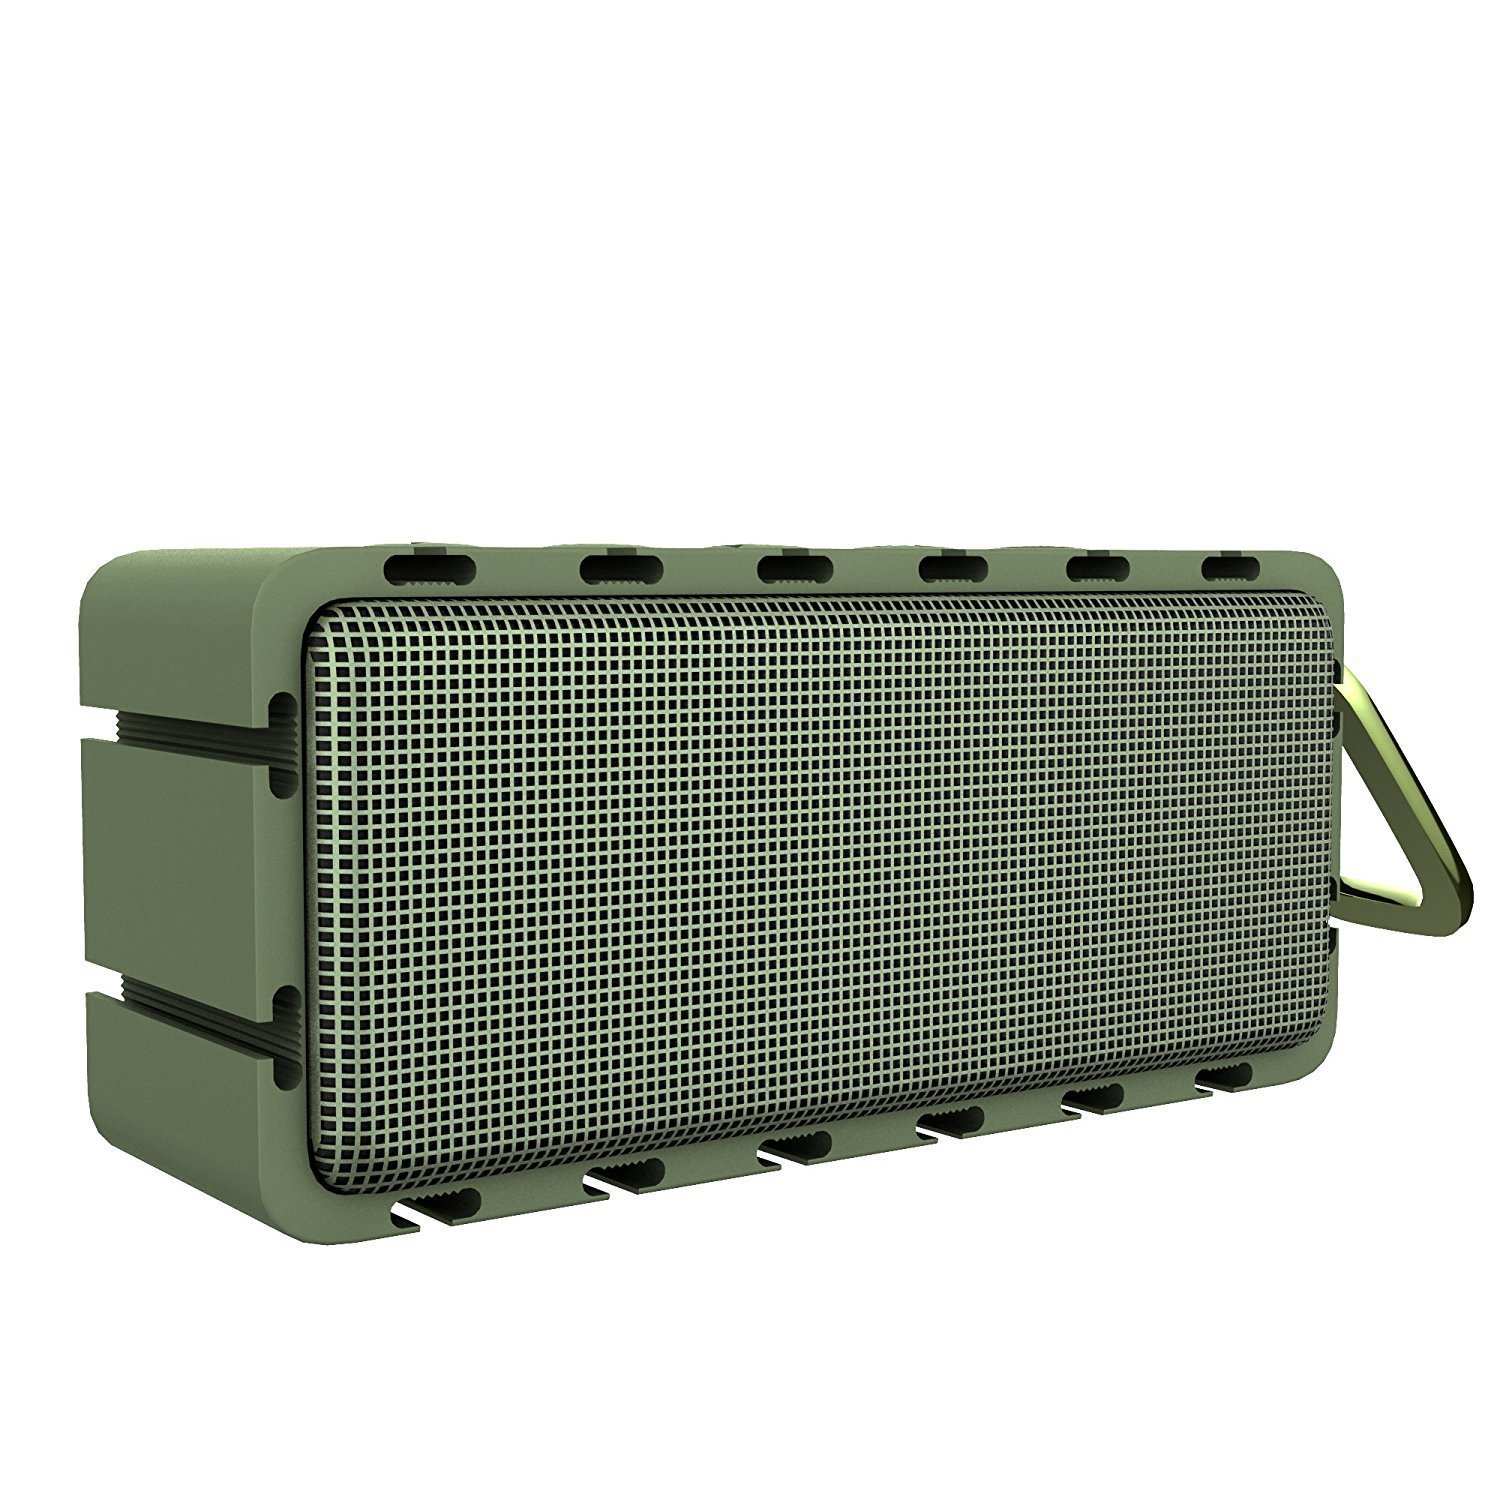 Remixcel Outdoor Speaker IPX6 Waterproof Stereo Sound Bluetooth Speakers Wireless Portable Speakers Green